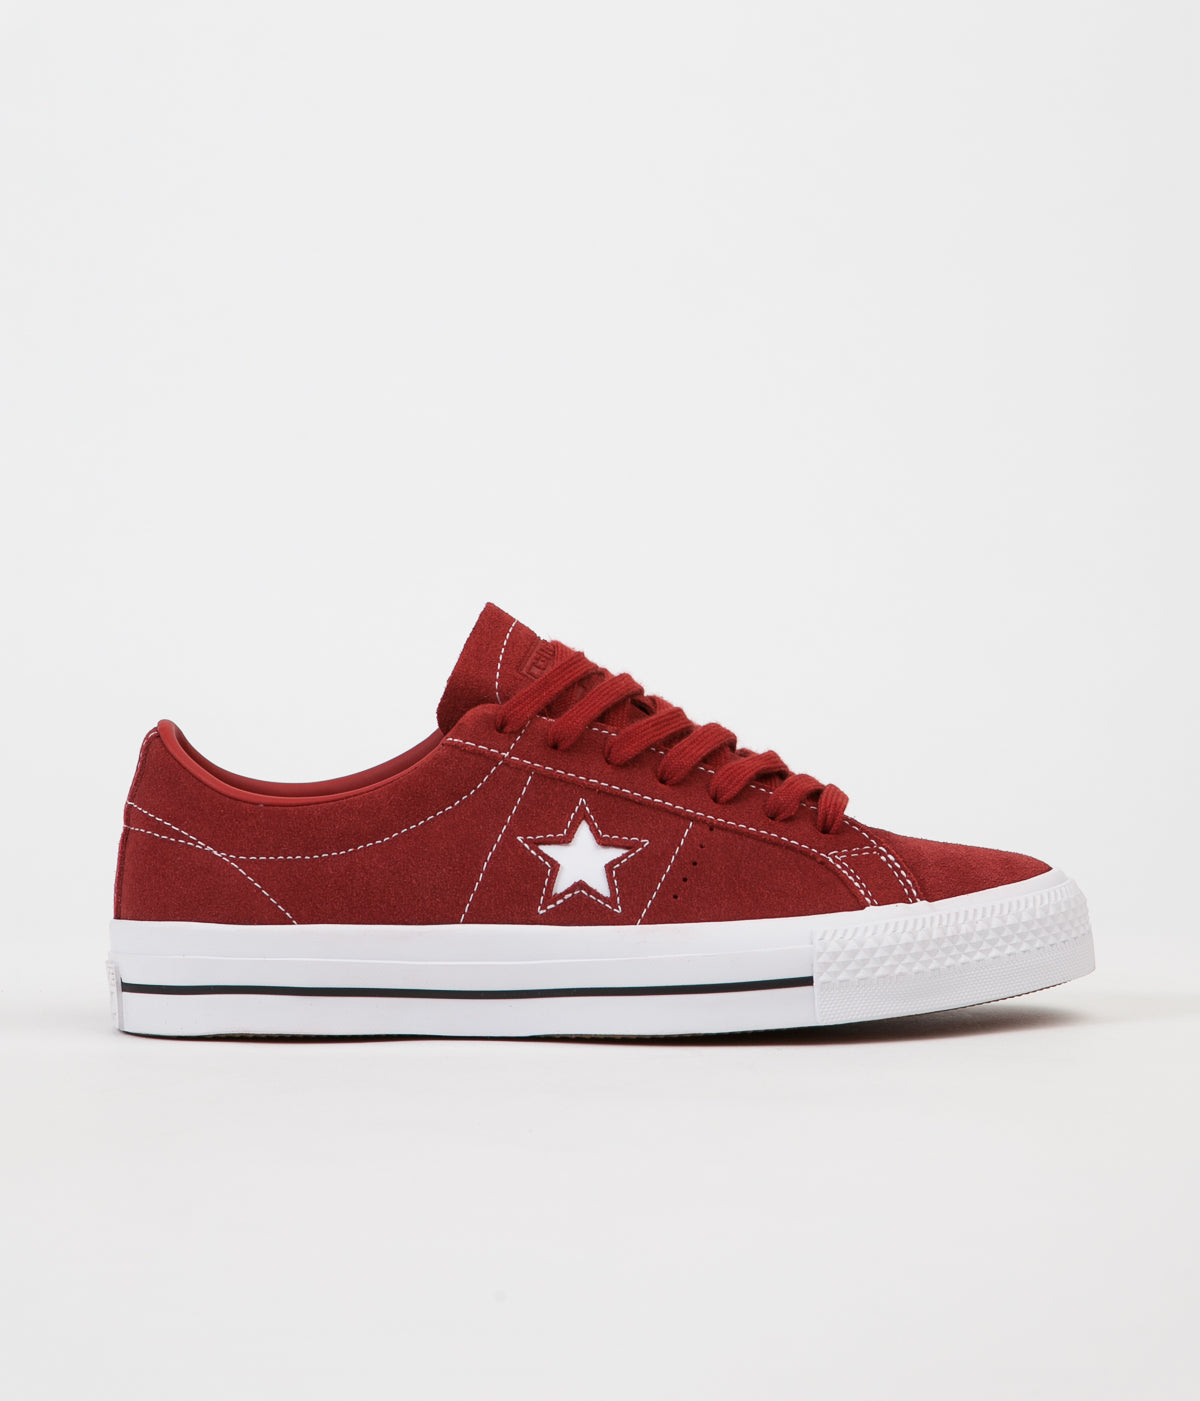 aeed8964261c91 ... hot converse one star pro ox shoes terra red terra red 9e899 f5f49